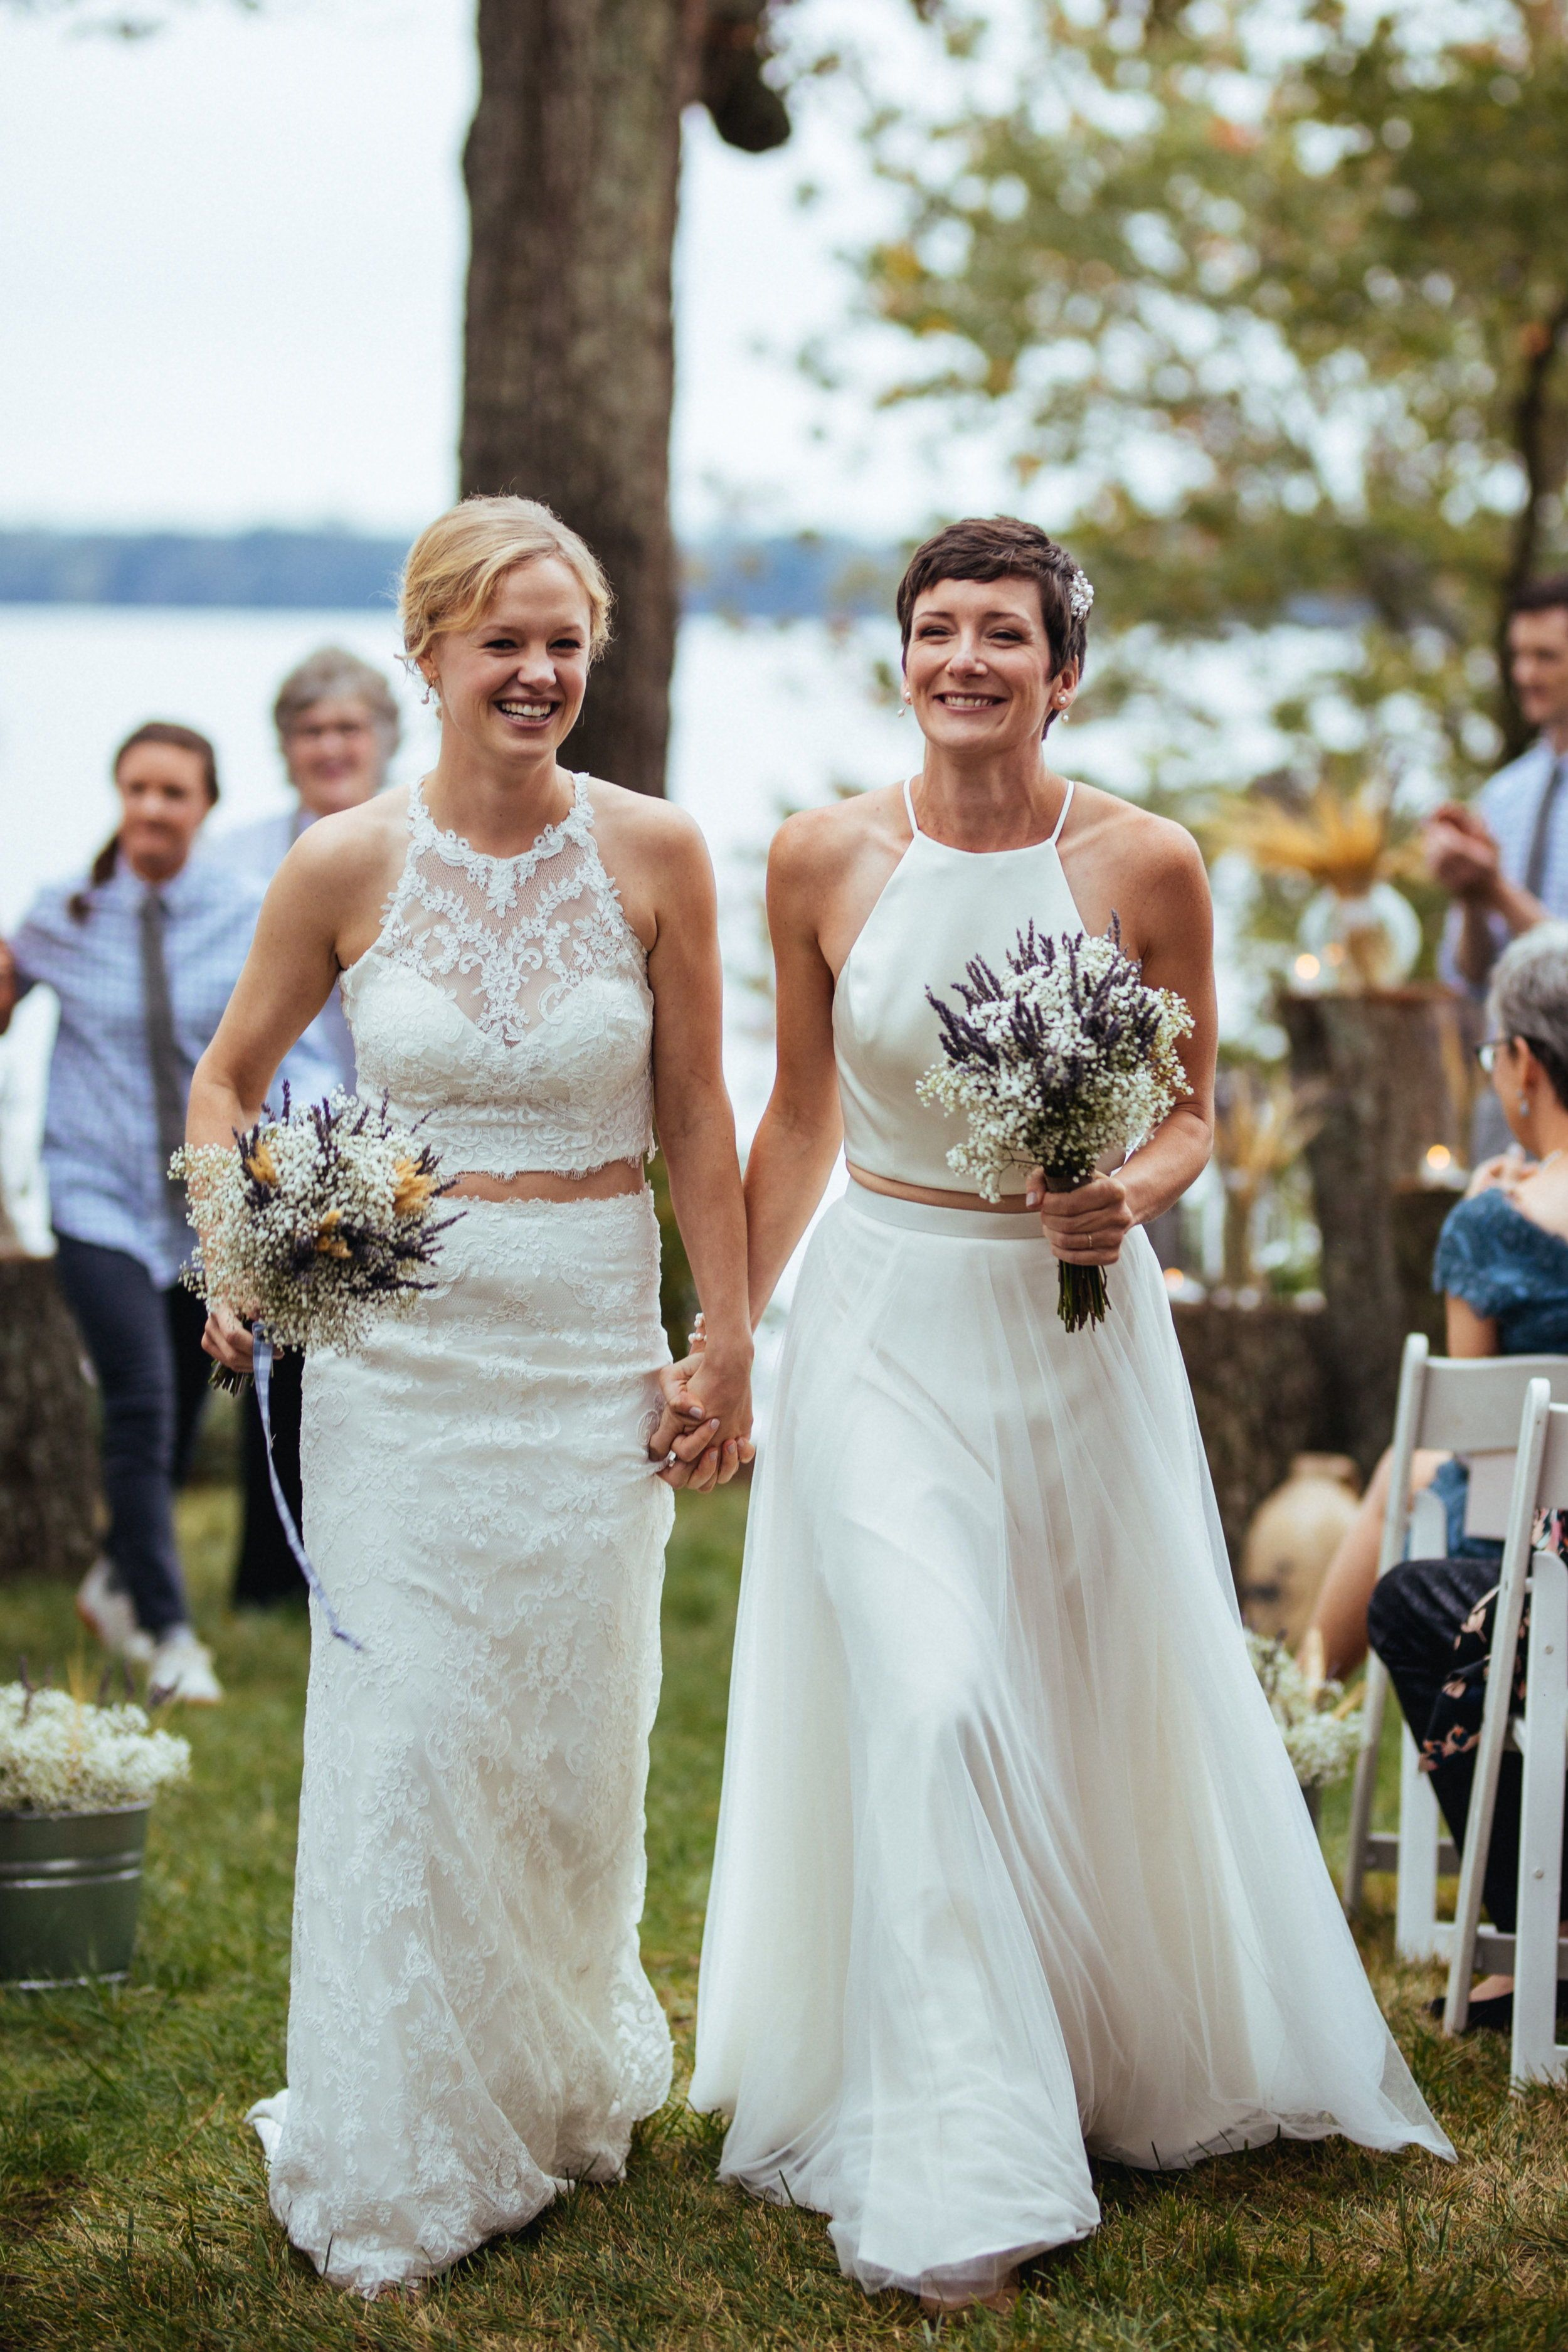 Willowby wedding dresses  Real Wedding Mel  Nell  Peaceful Lakeside Wedding with Two